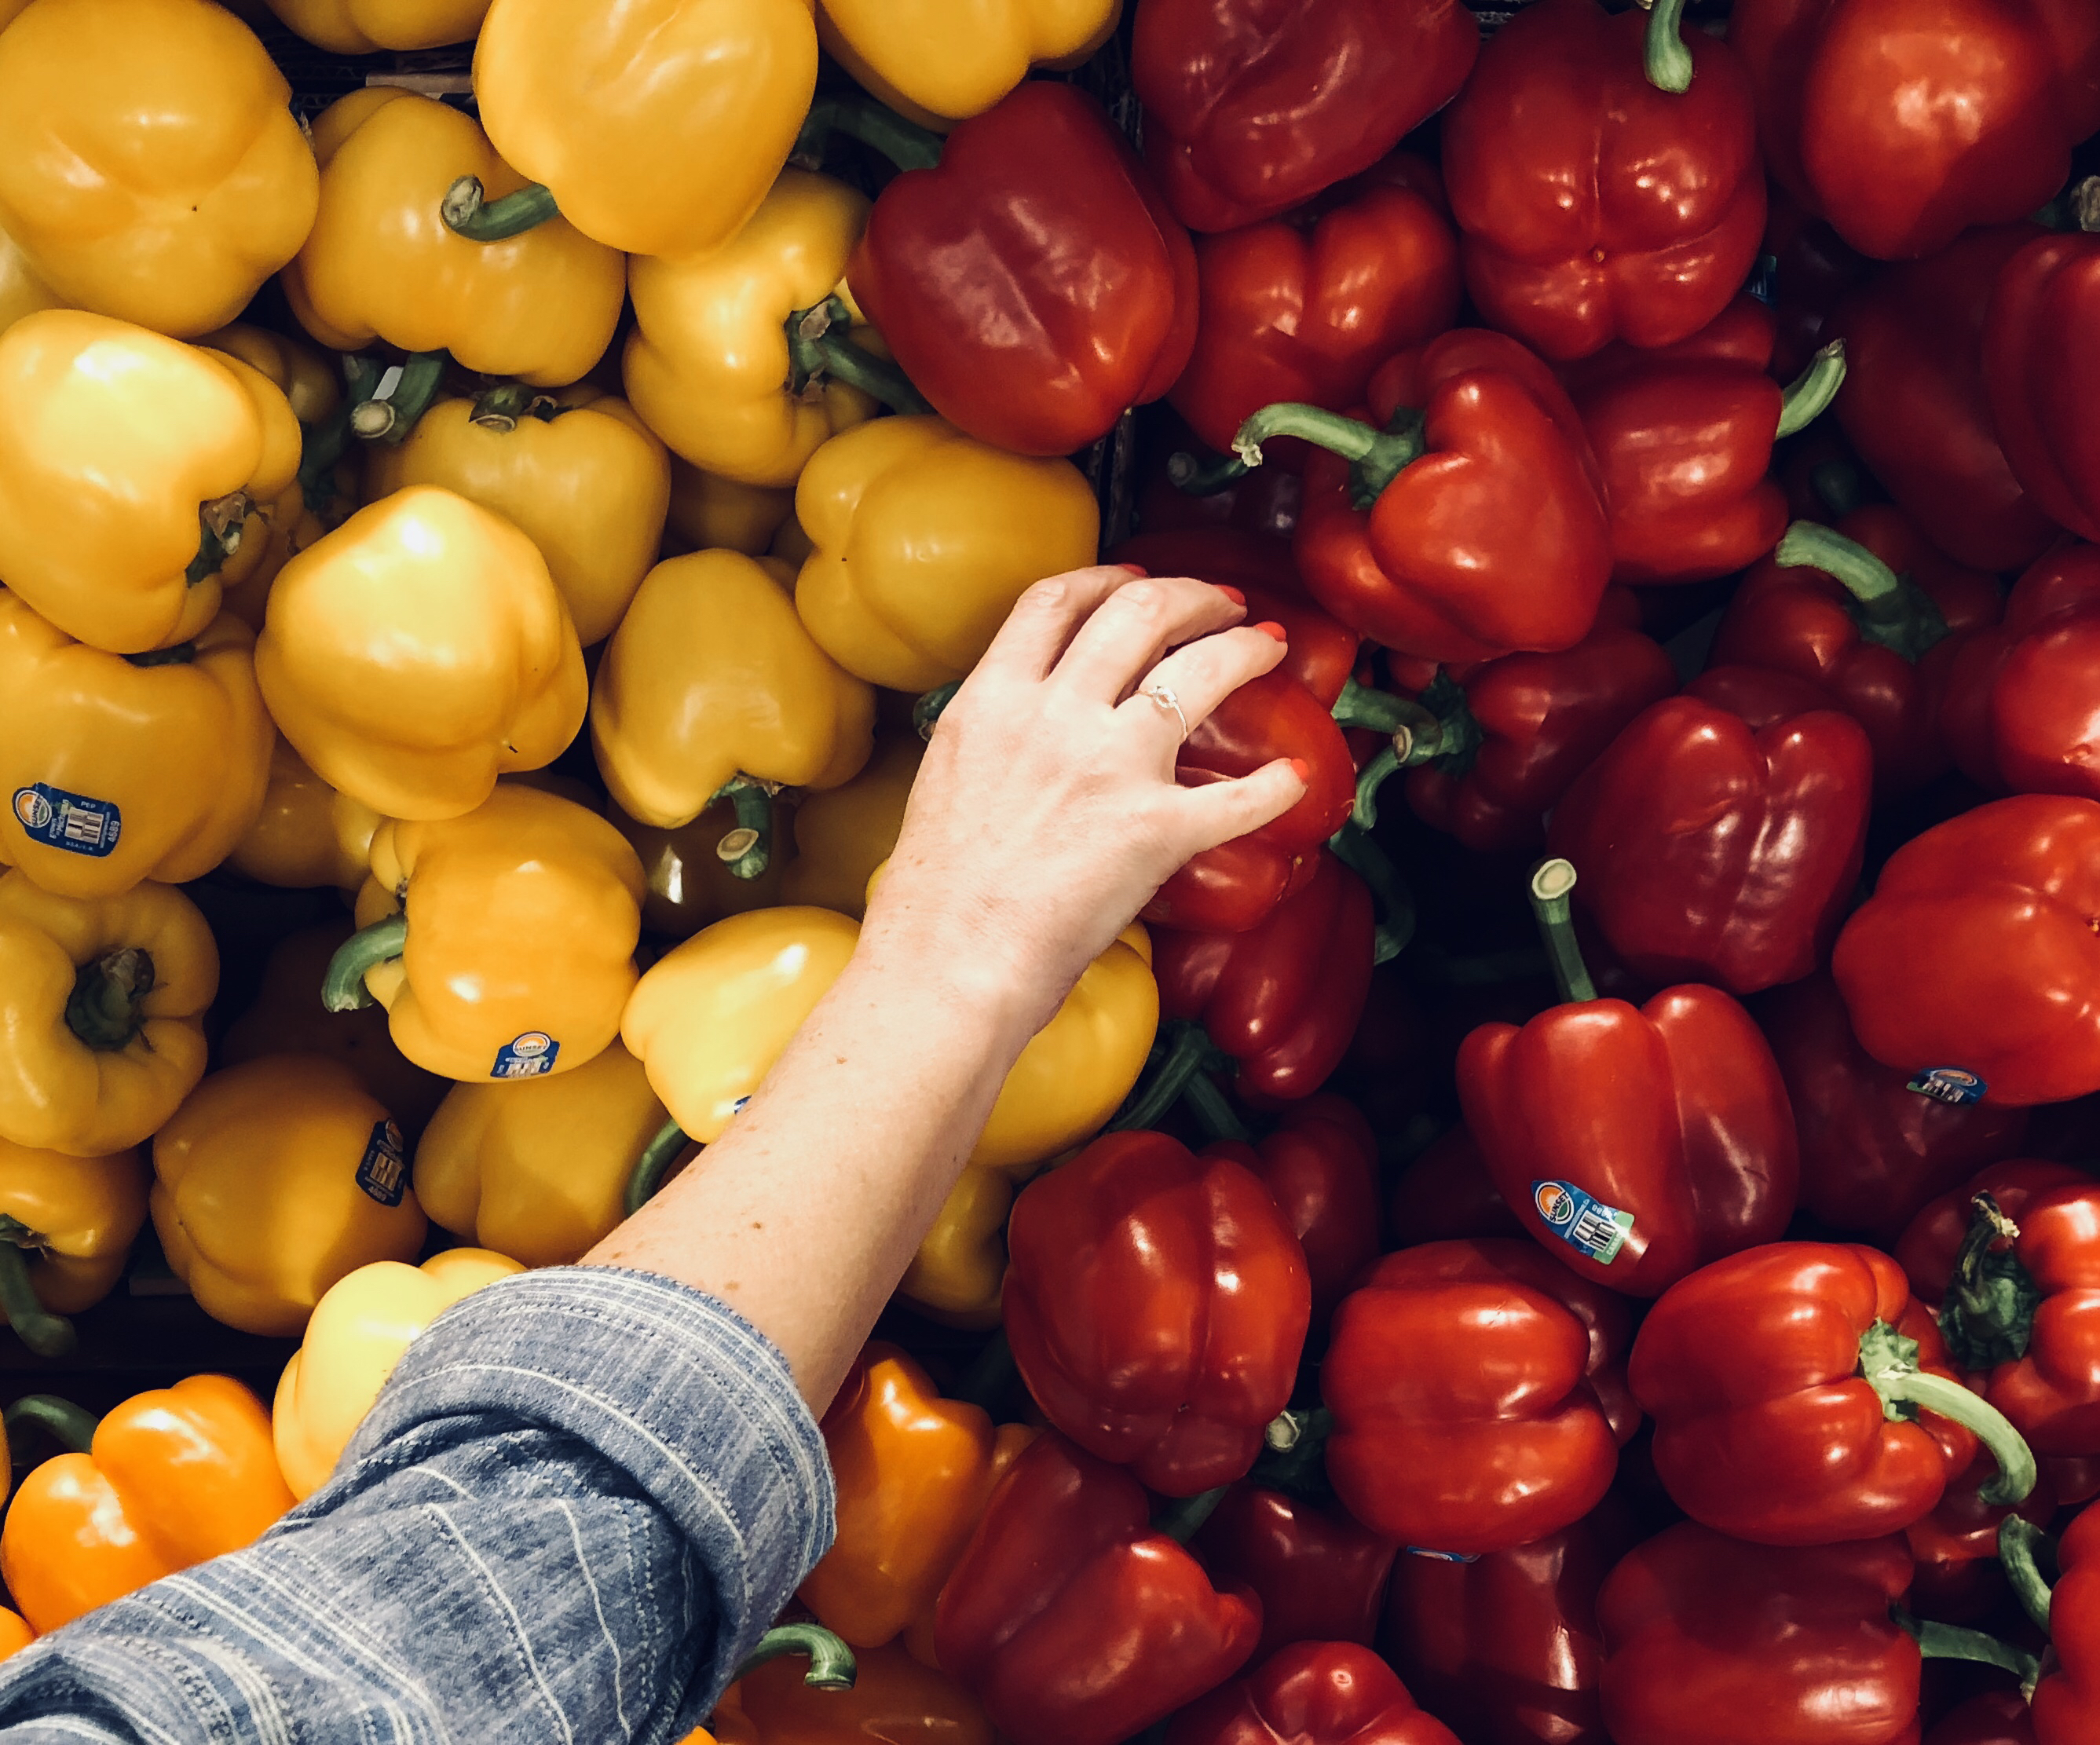 Making the Food Supply Chain More Efficient